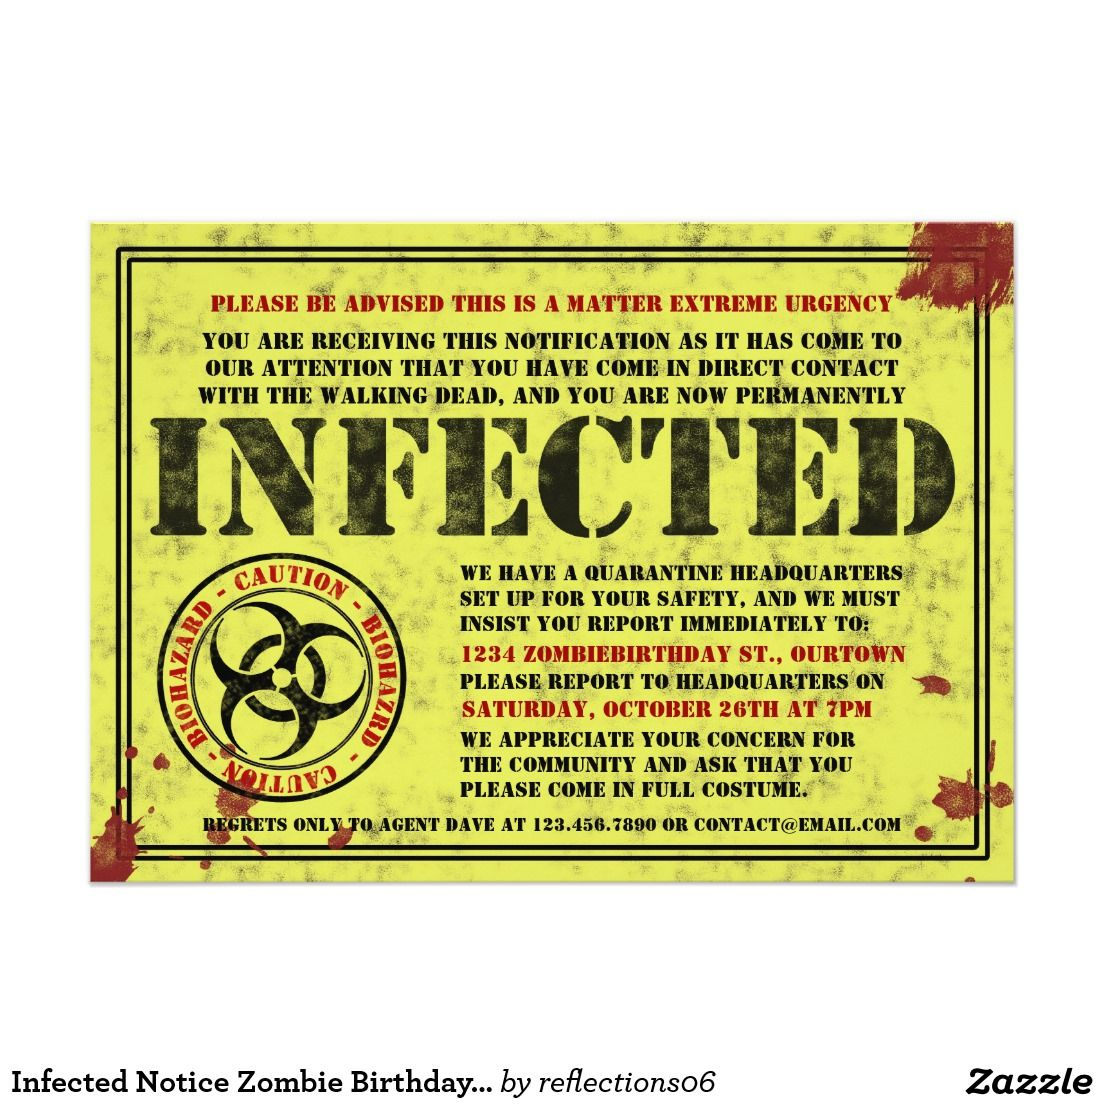 Infected notice zombie birthday party invitations zombie birthday infected notice zombie birthday party invitations 5 x 7 invitation card stopboris Image collections